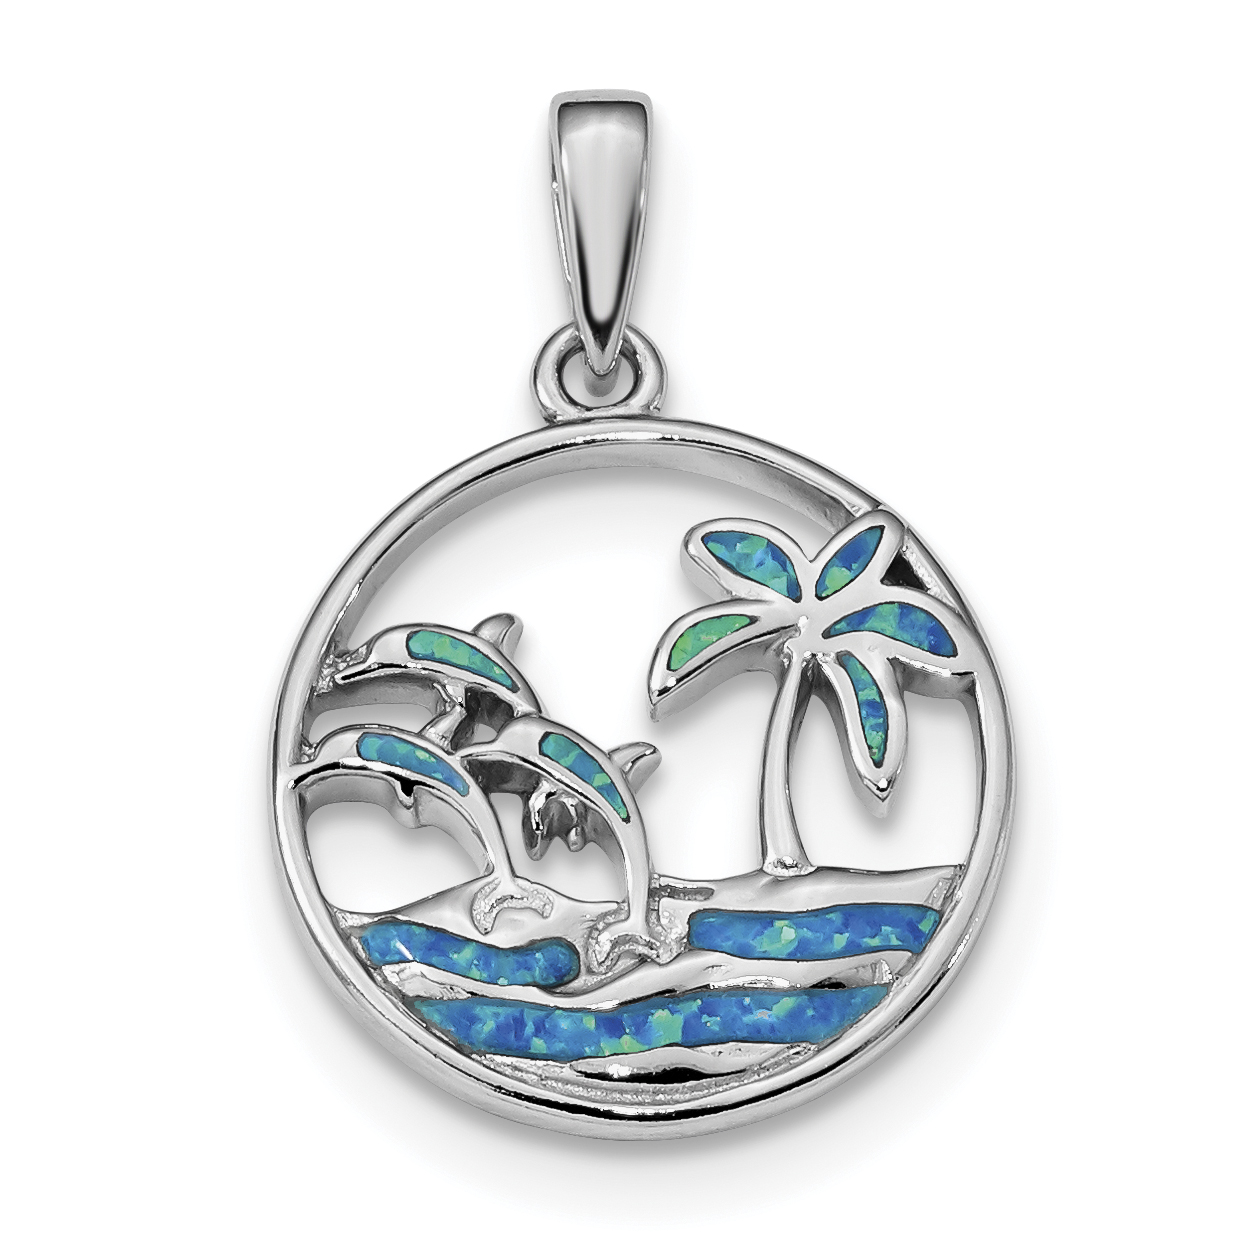 925 Sterling Silver Blue Created Opal Dolphins Pendant Charm Necklace Sea Life Dolphin Fine Jewelry Gifts For Women For Her - image 4 de 4